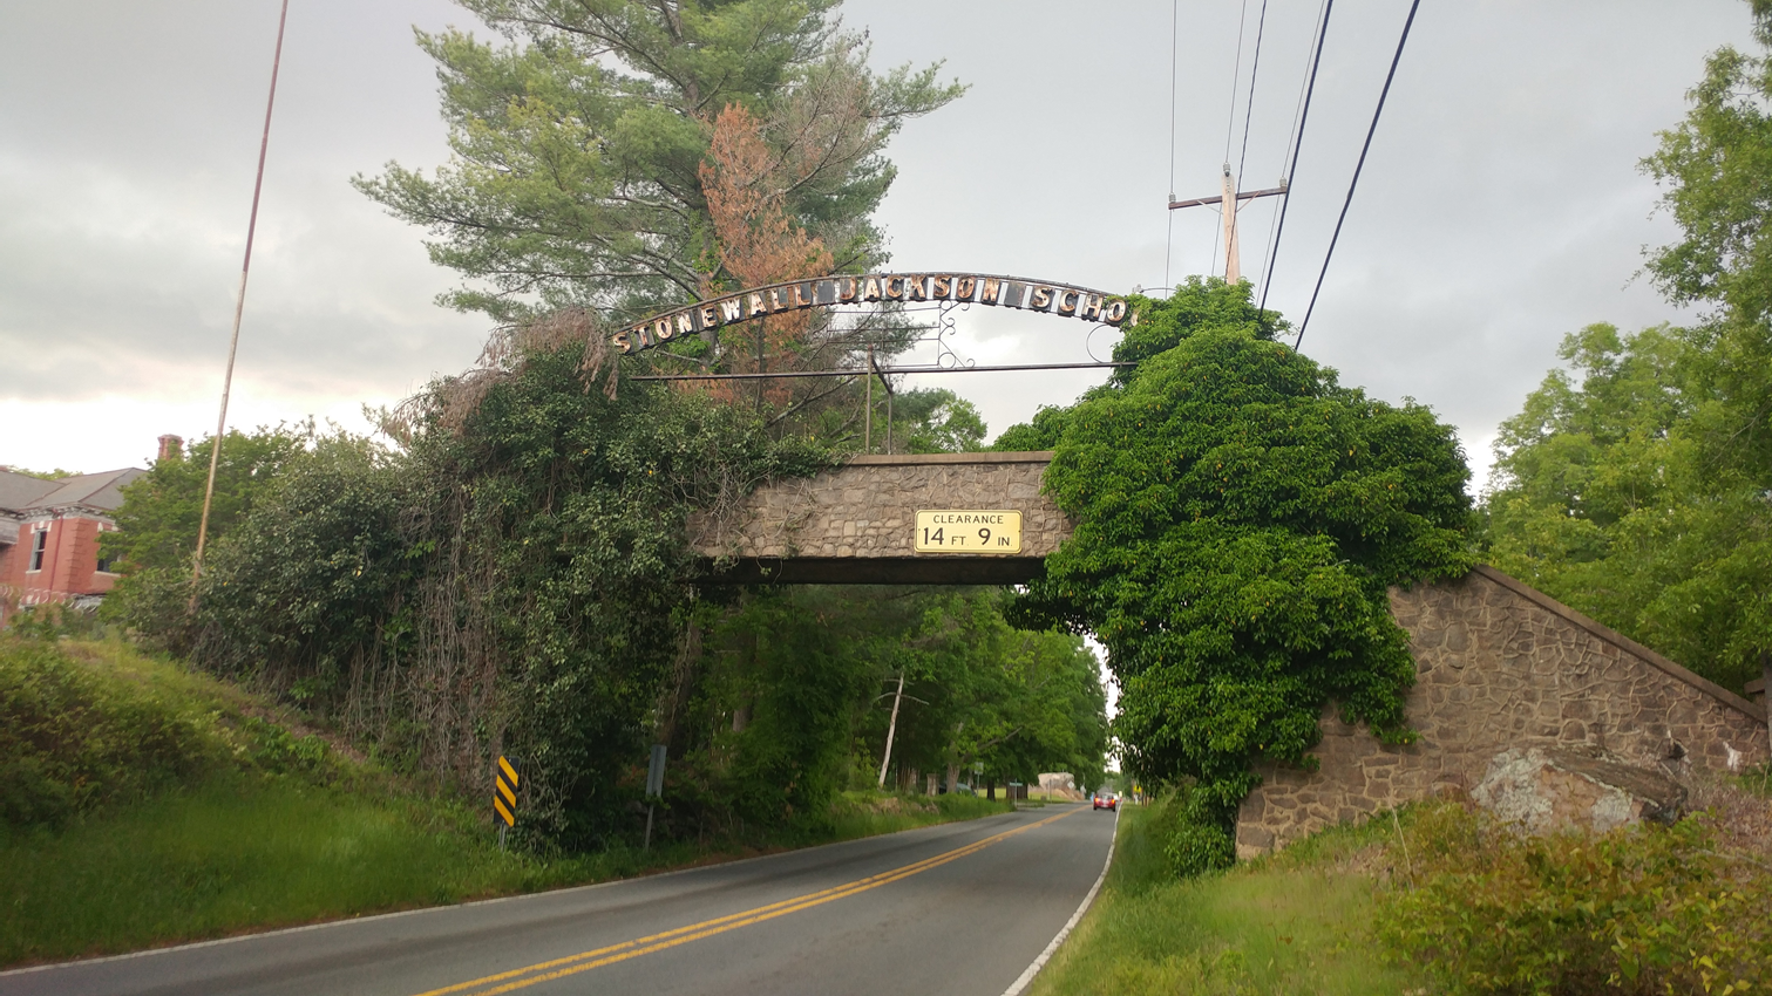 The sign for Old Stonewall above an ivy covered bridge built in 1940